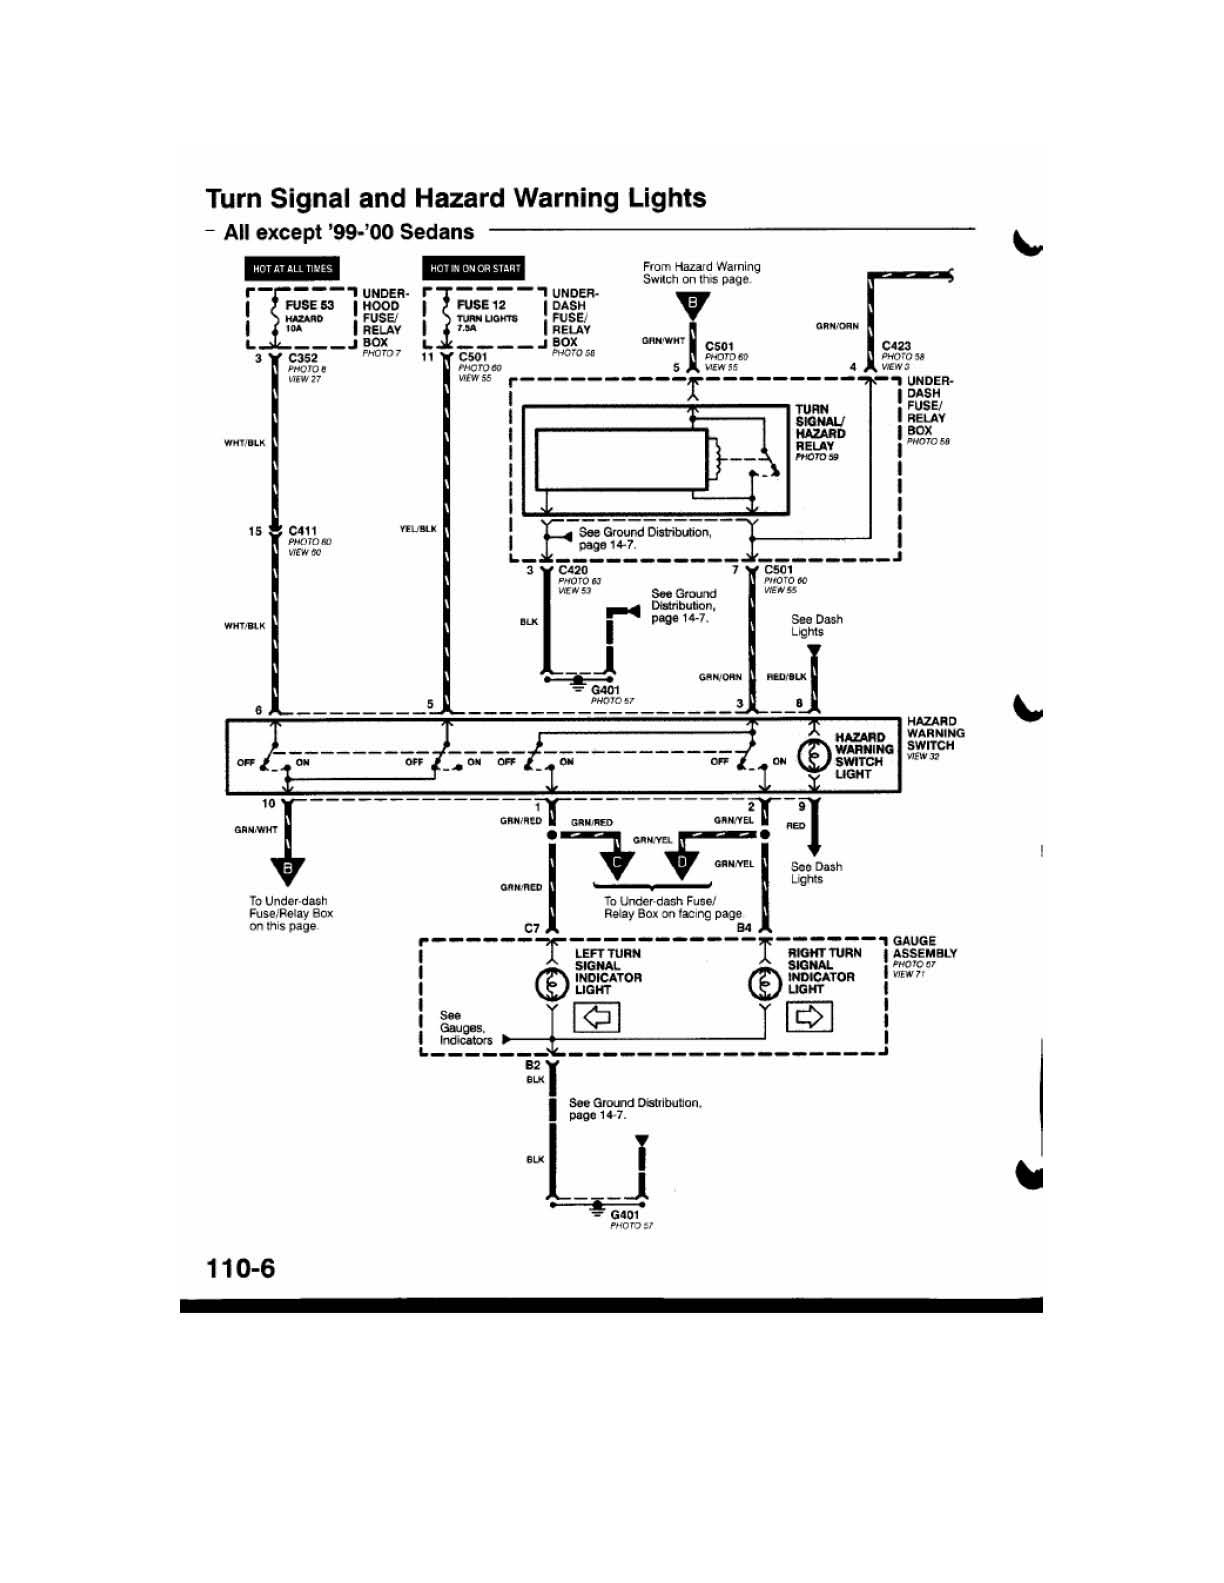 medium resolution of wiring 110 series wiring diagram centreturn signal wiring diagram needed d series org within 99 civicturn